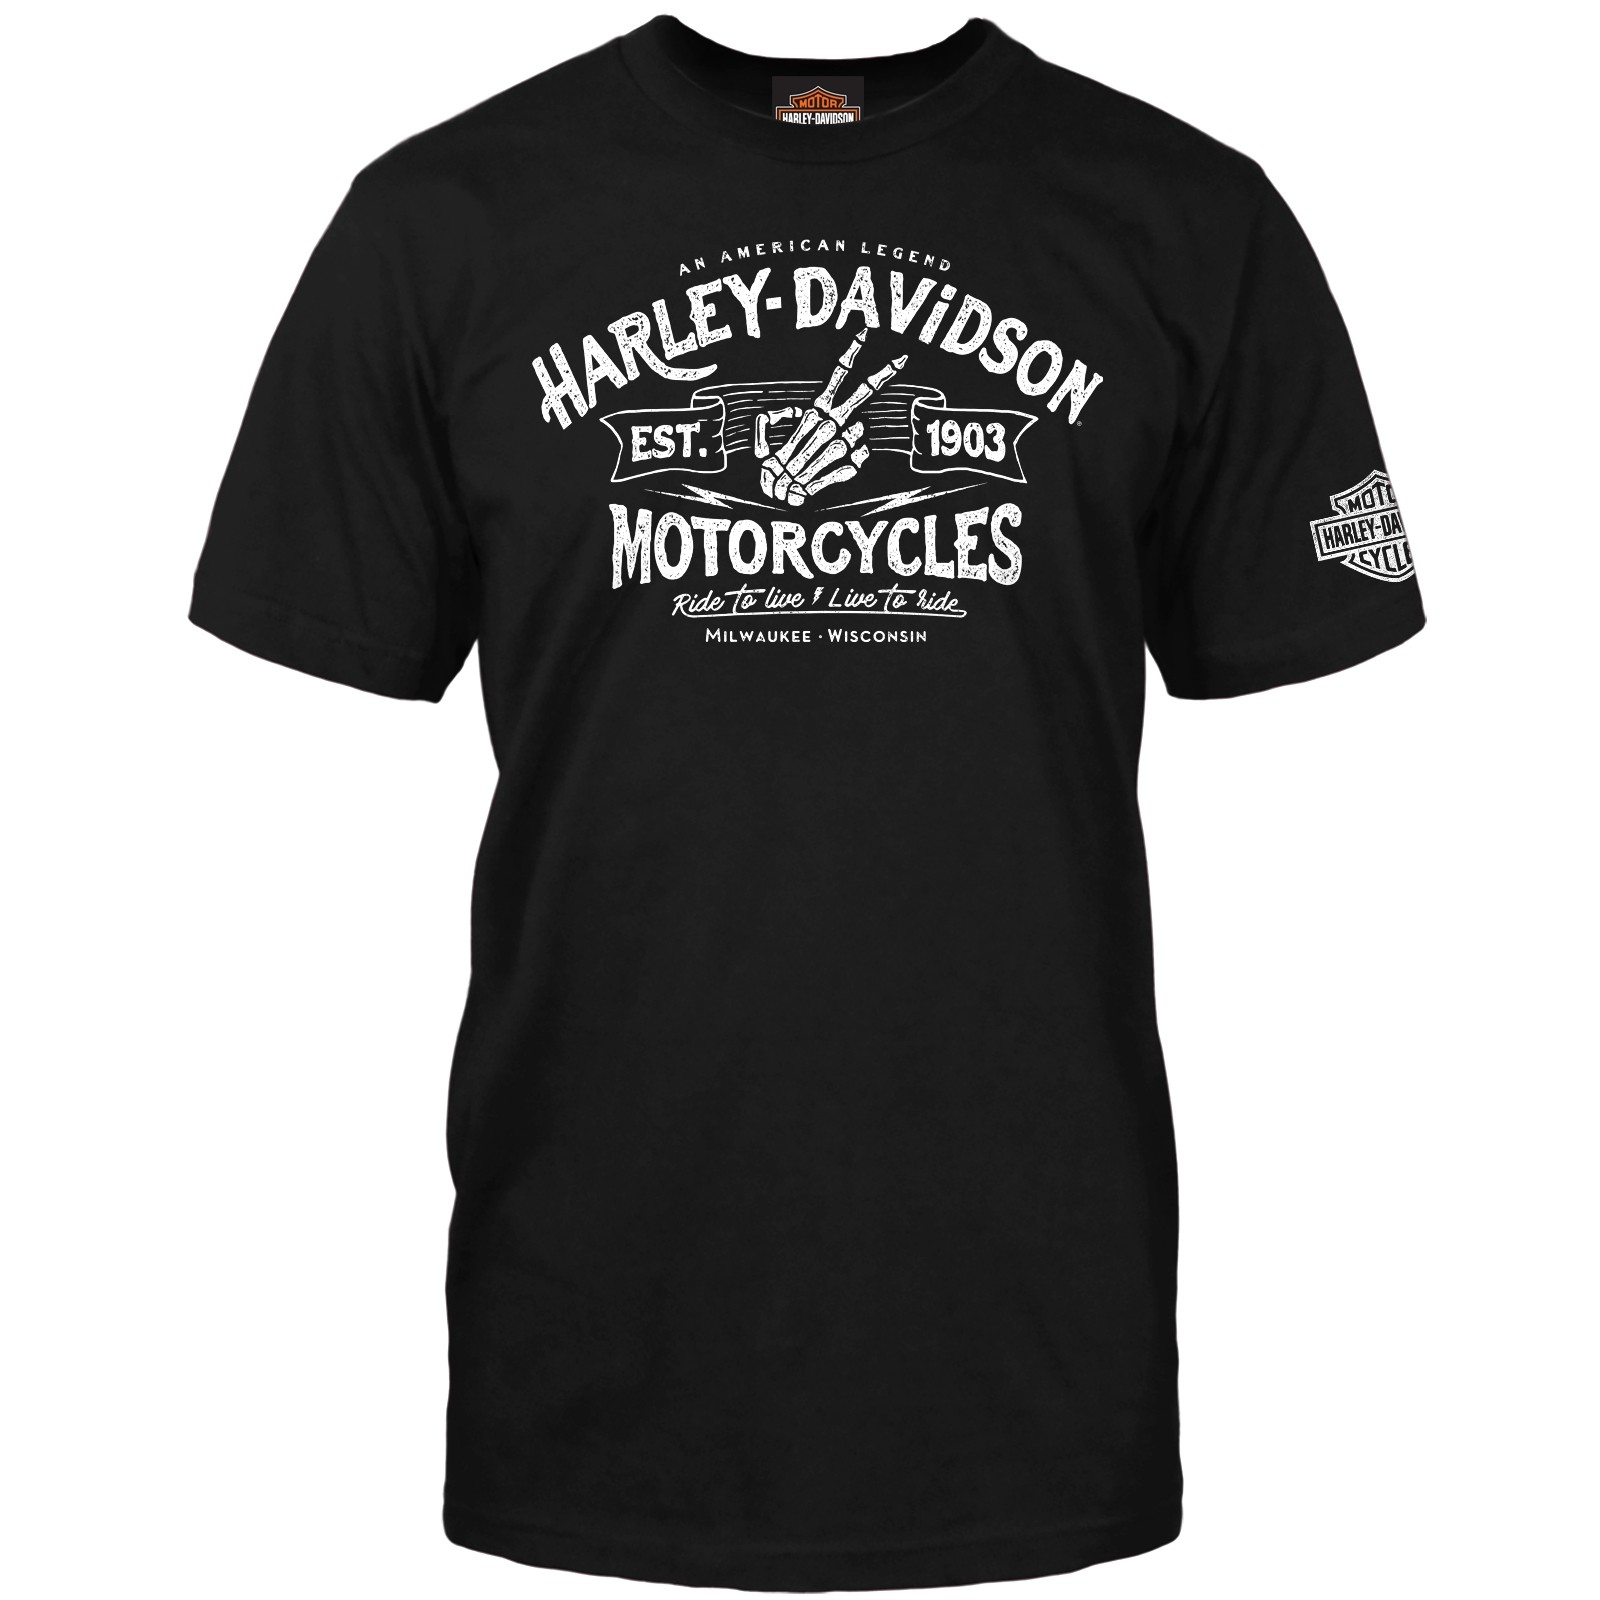 Harley-Davidson Men's Short-Sleeve Graphic T-Shirt - NAS Sigonella | Wave